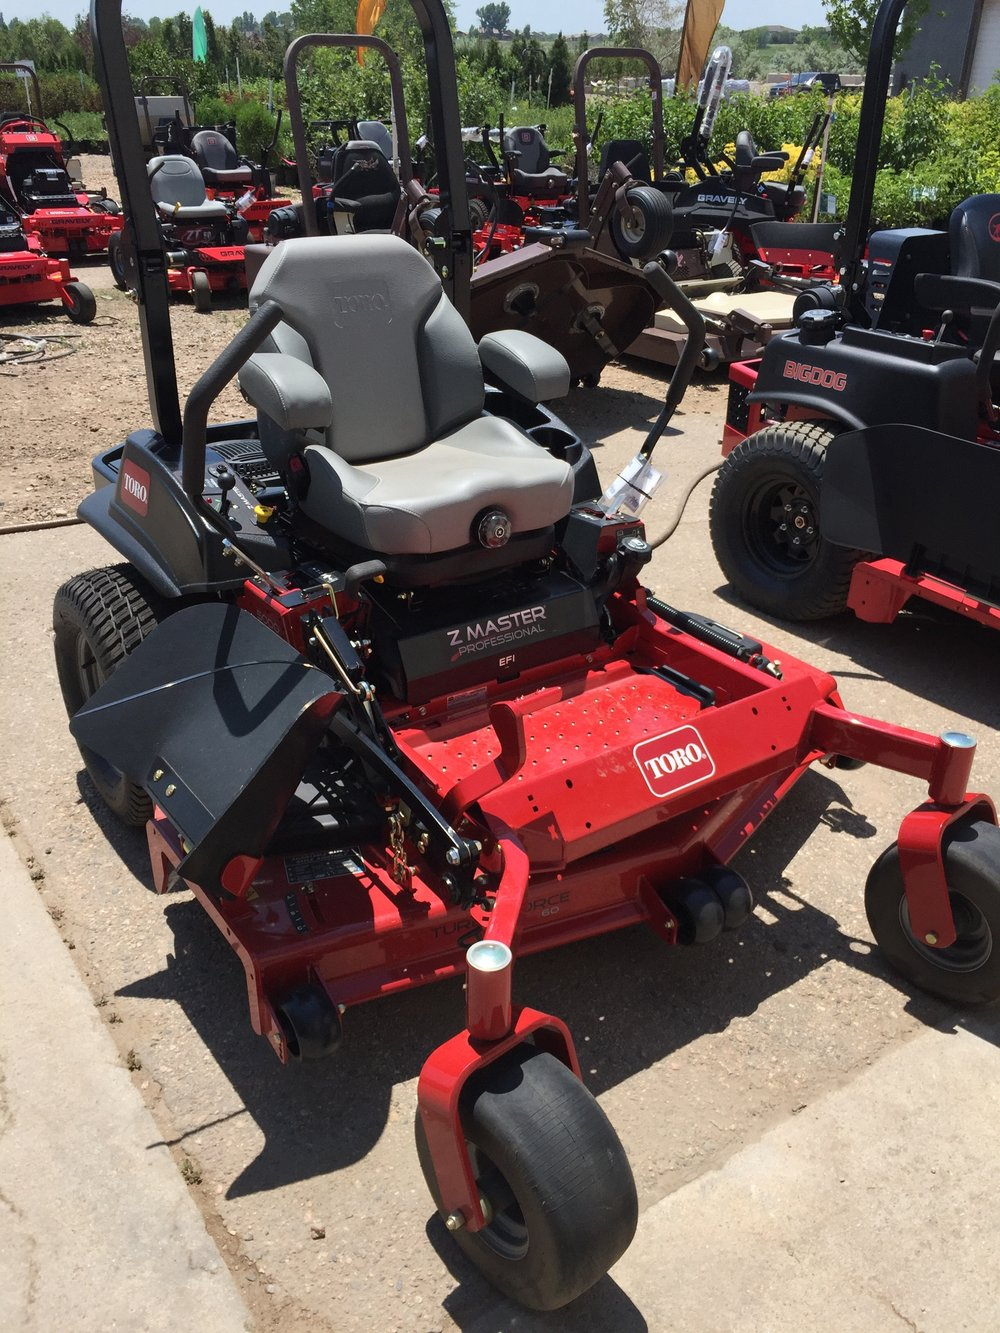 The Toro Z Master 5000 series equipped with a deluxe suspension seat that uses 3-D isolator mounts might be the comfiest ride out there.